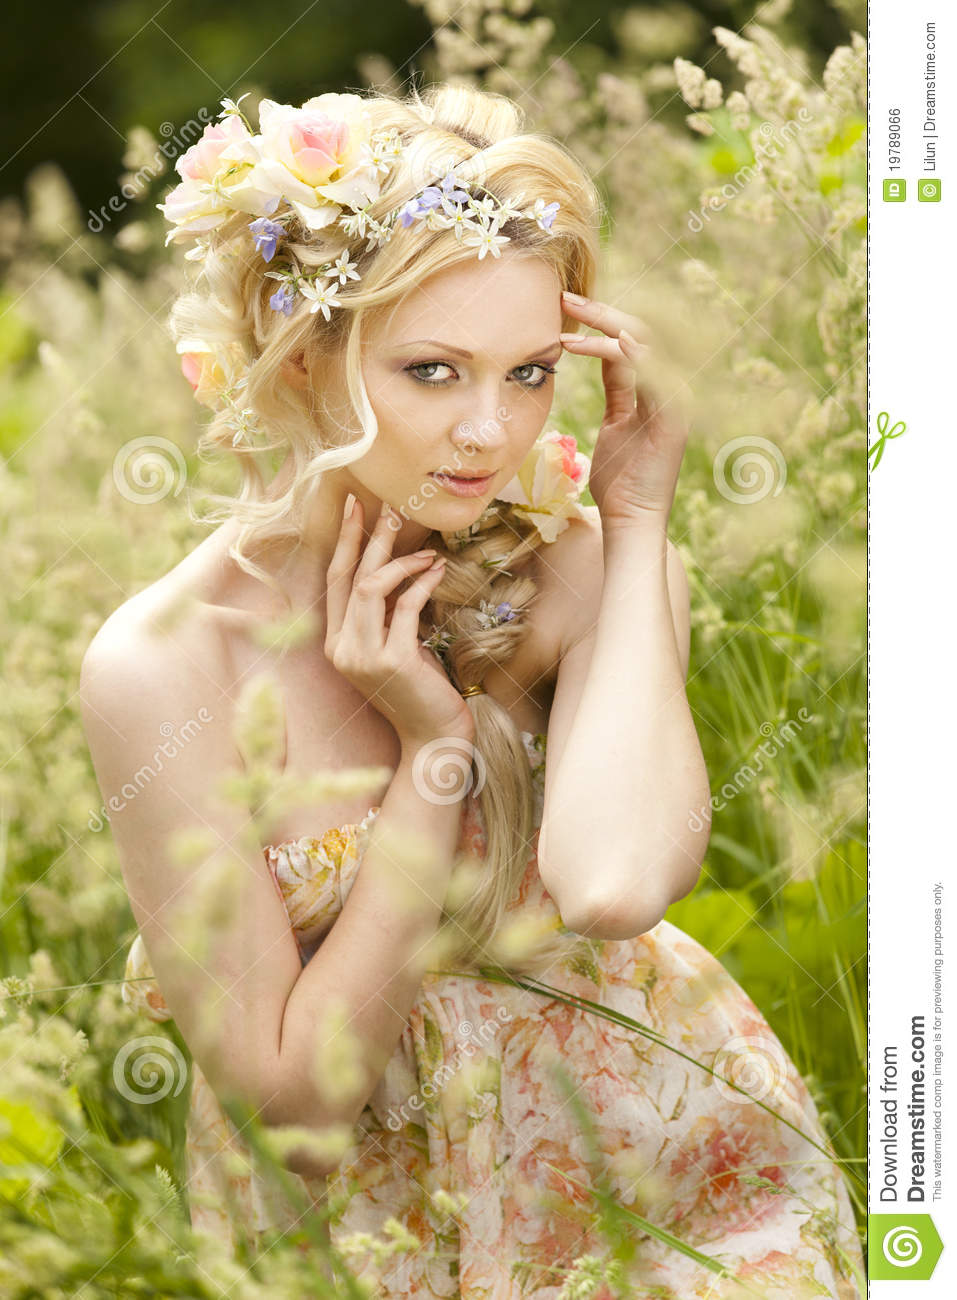 flower in her hair - photo #13